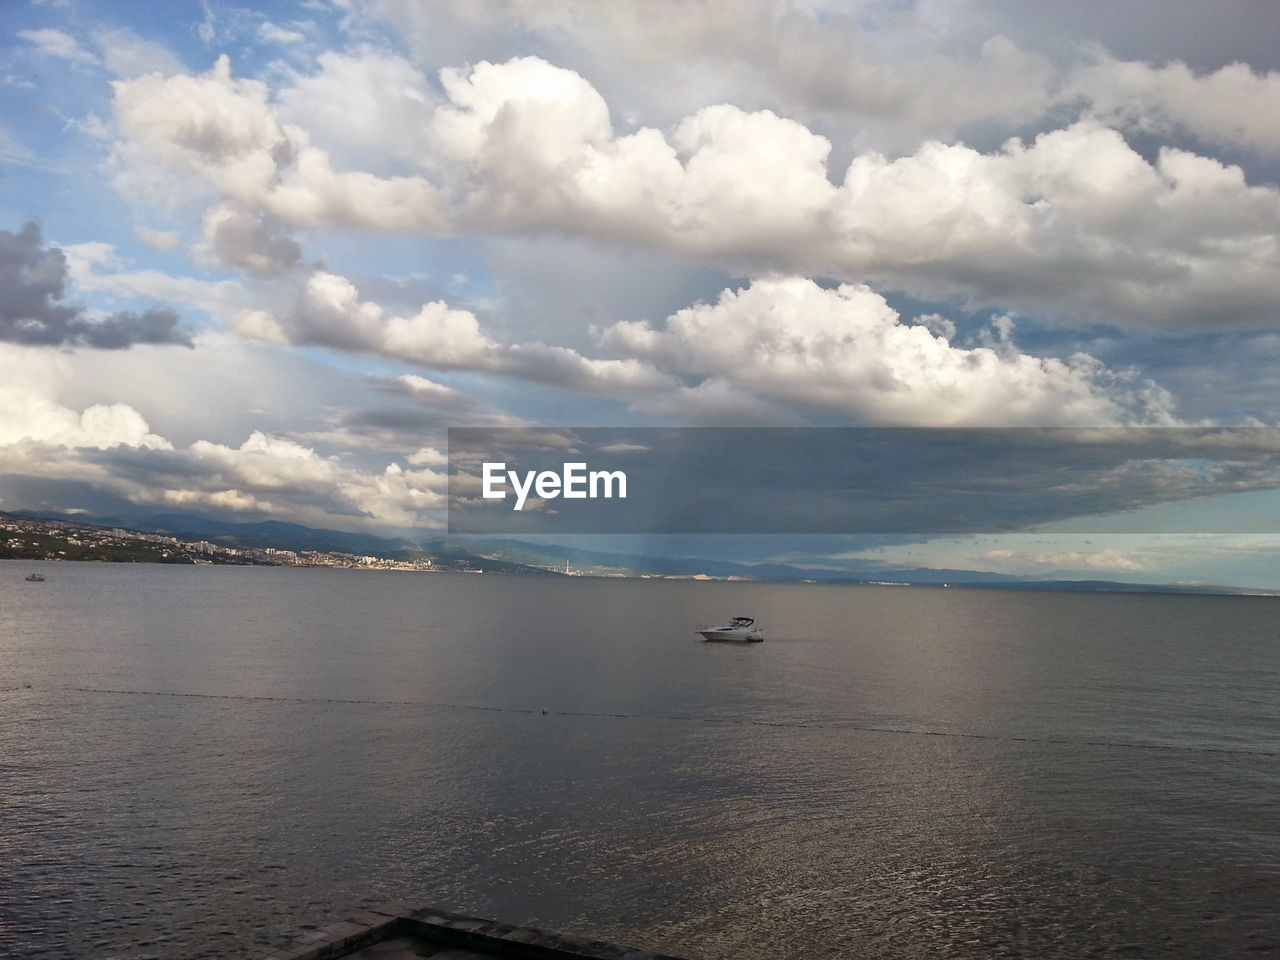 water, sea, cloud - sky, sky, beauty in nature, tranquility, nature, scenics, waterfront, transportation, tranquil scene, outdoors, day, no people, nautical vessel, horizon over water